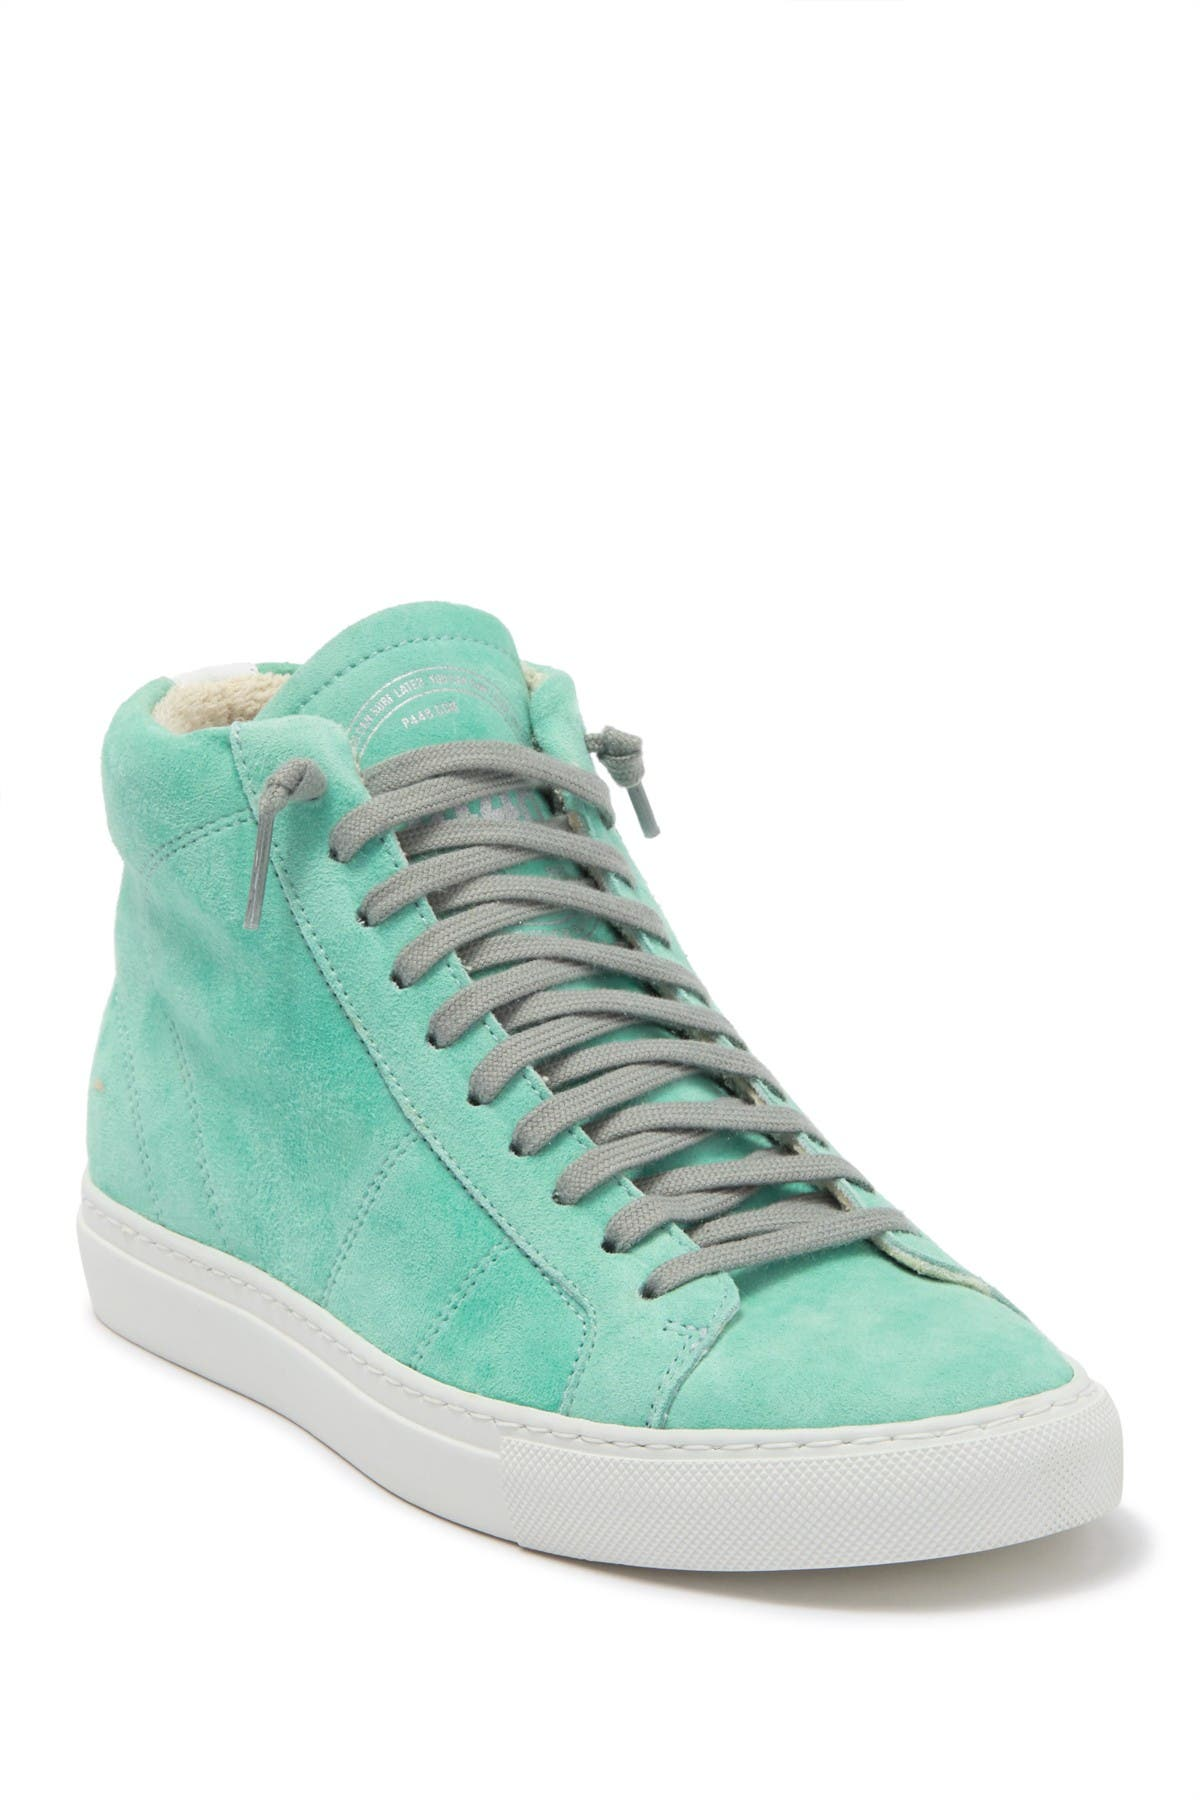 Image of P448 S20 High Top Star Sneaker